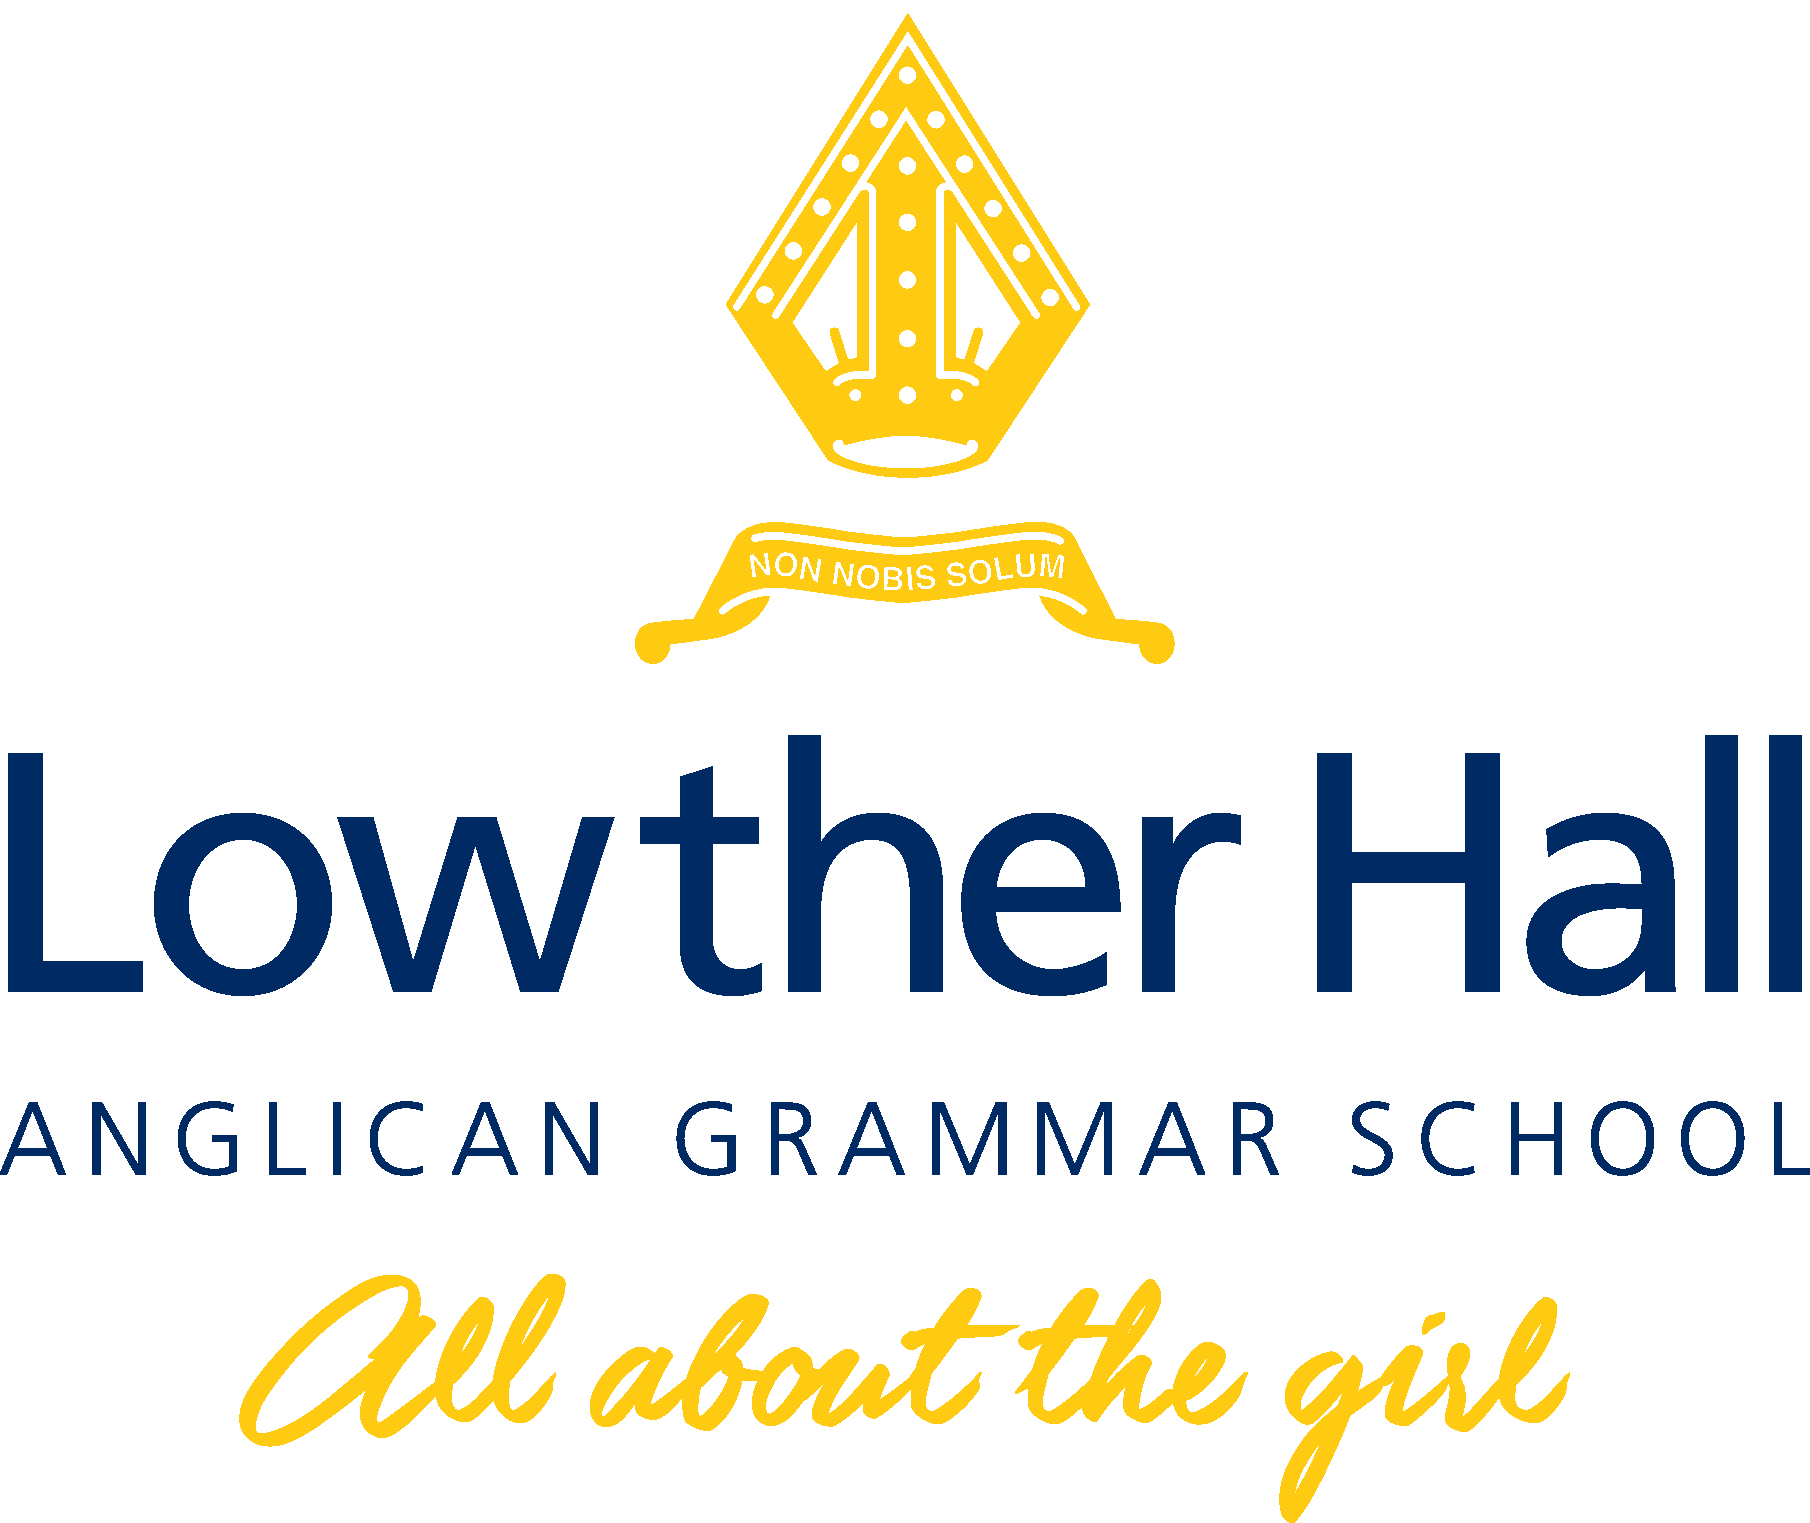 Lowther Hall Anglican Grammar School   Good Schools Guide